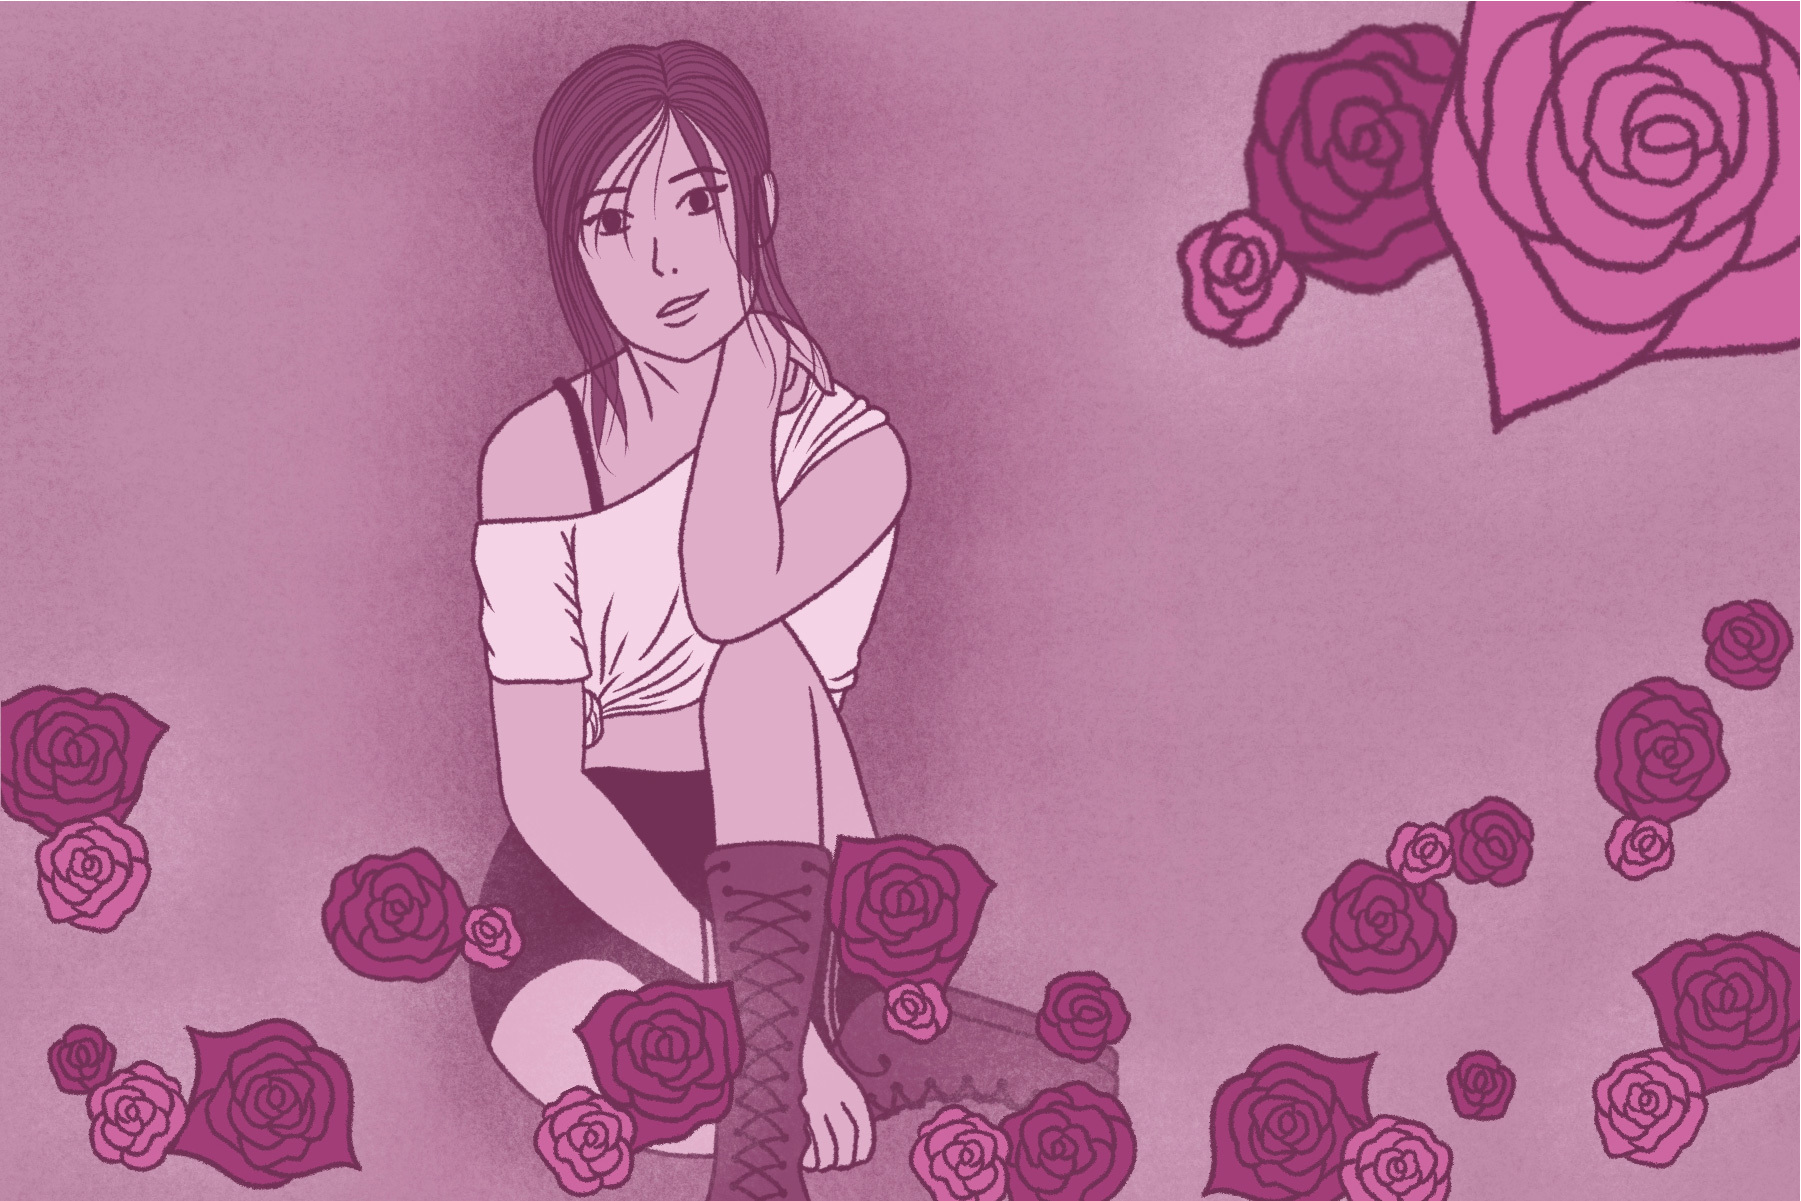 Illustration by Lexey Gonzalez for an article on Rosé